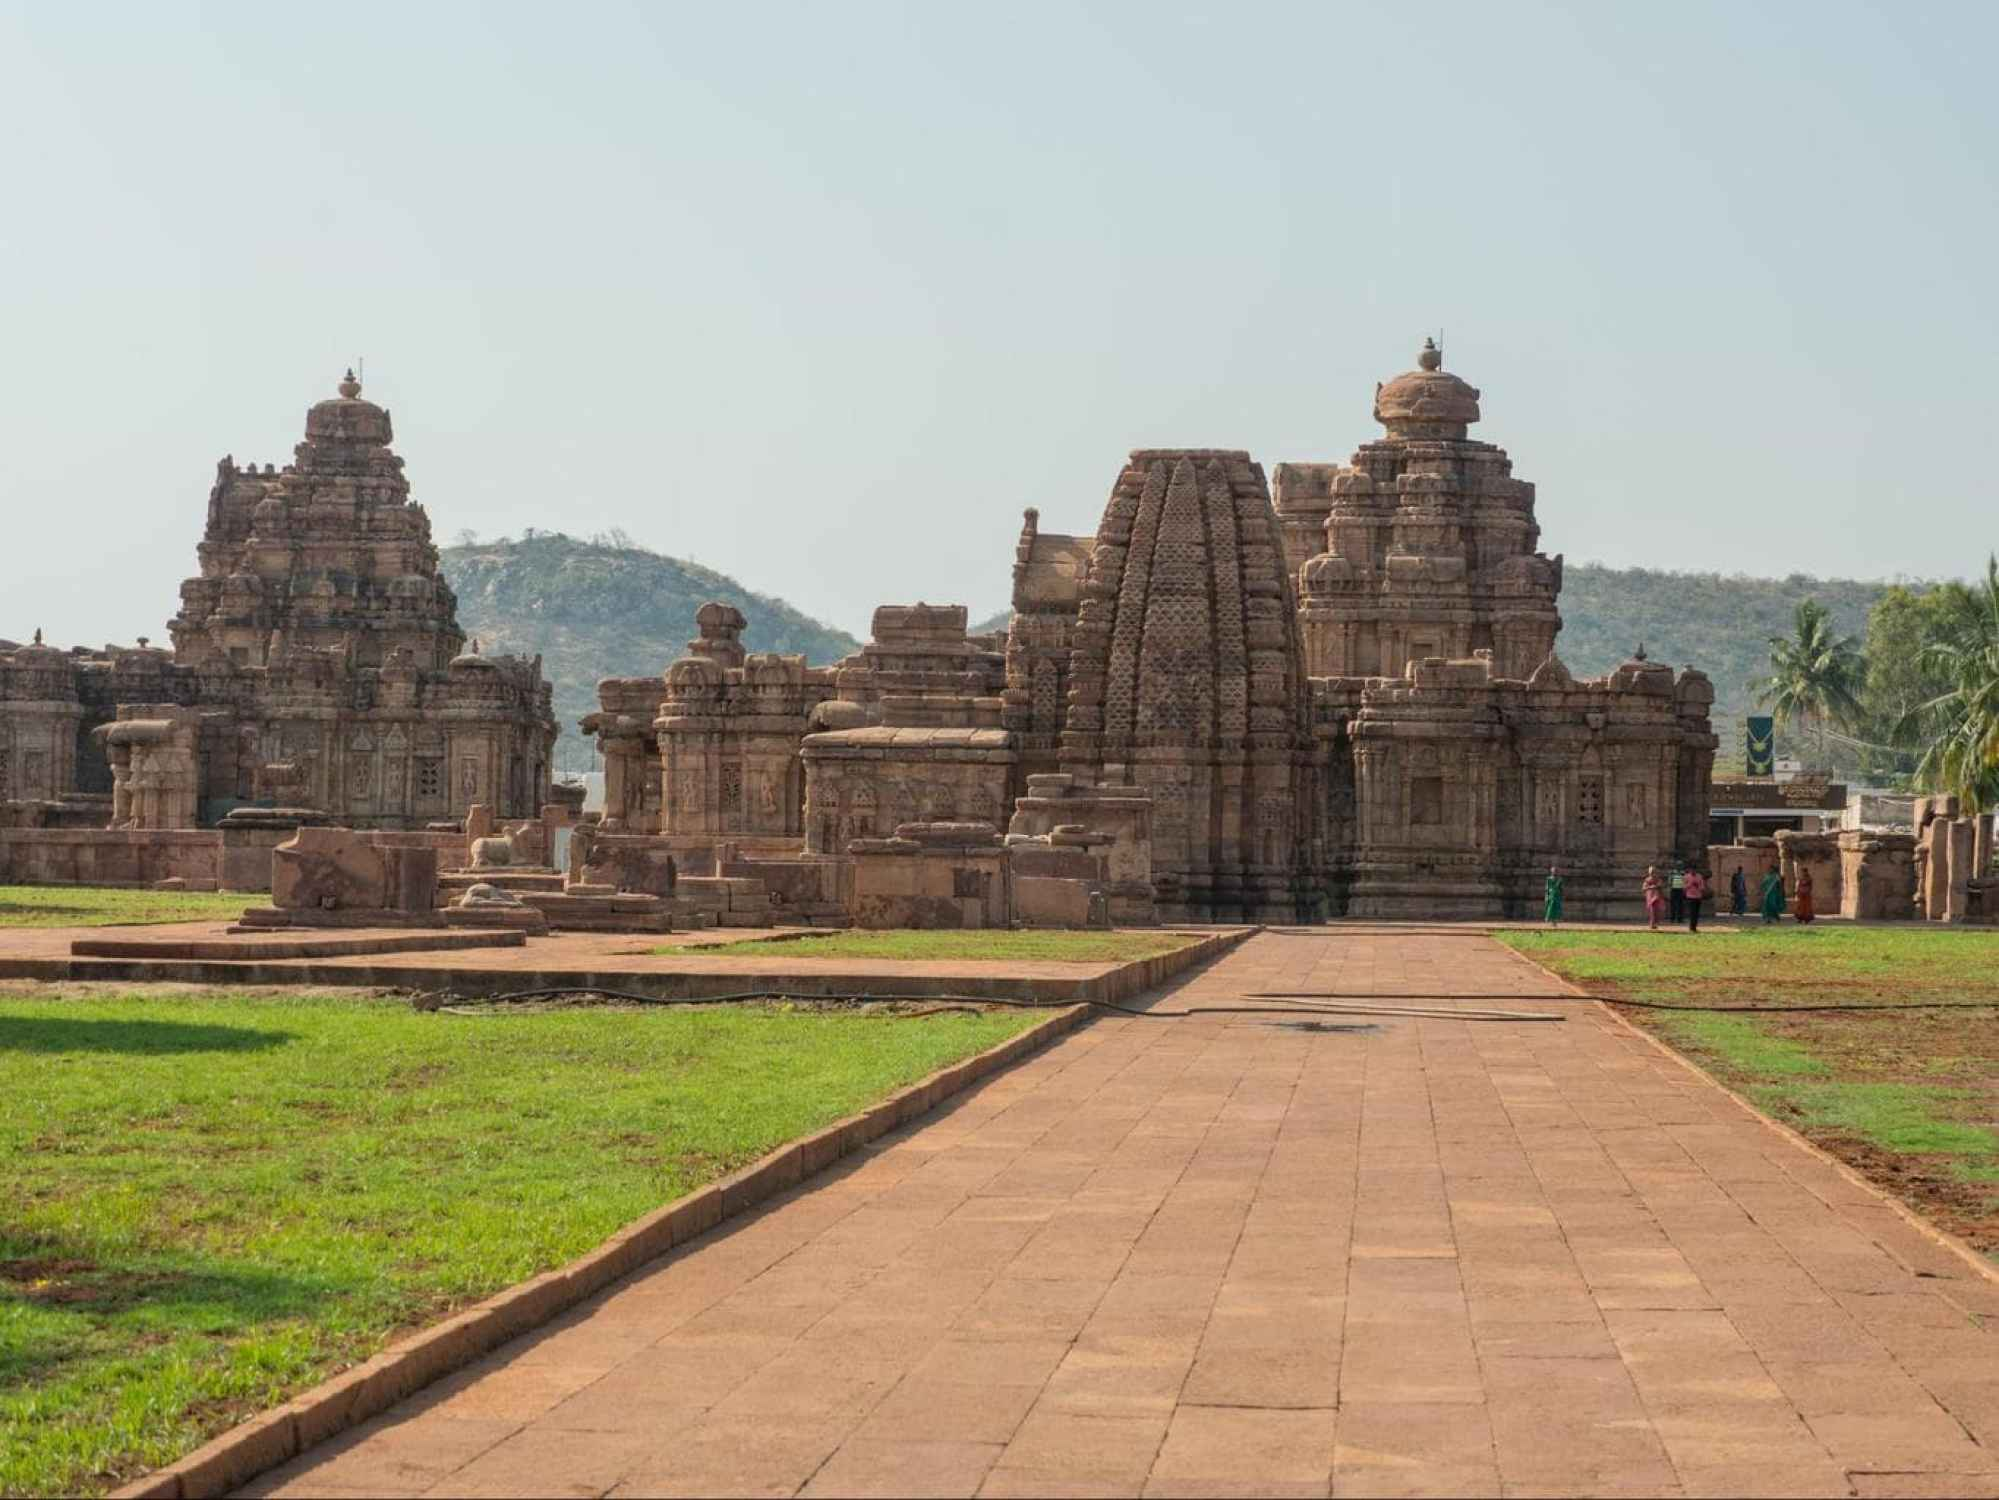 Pattadakal Temples from afar